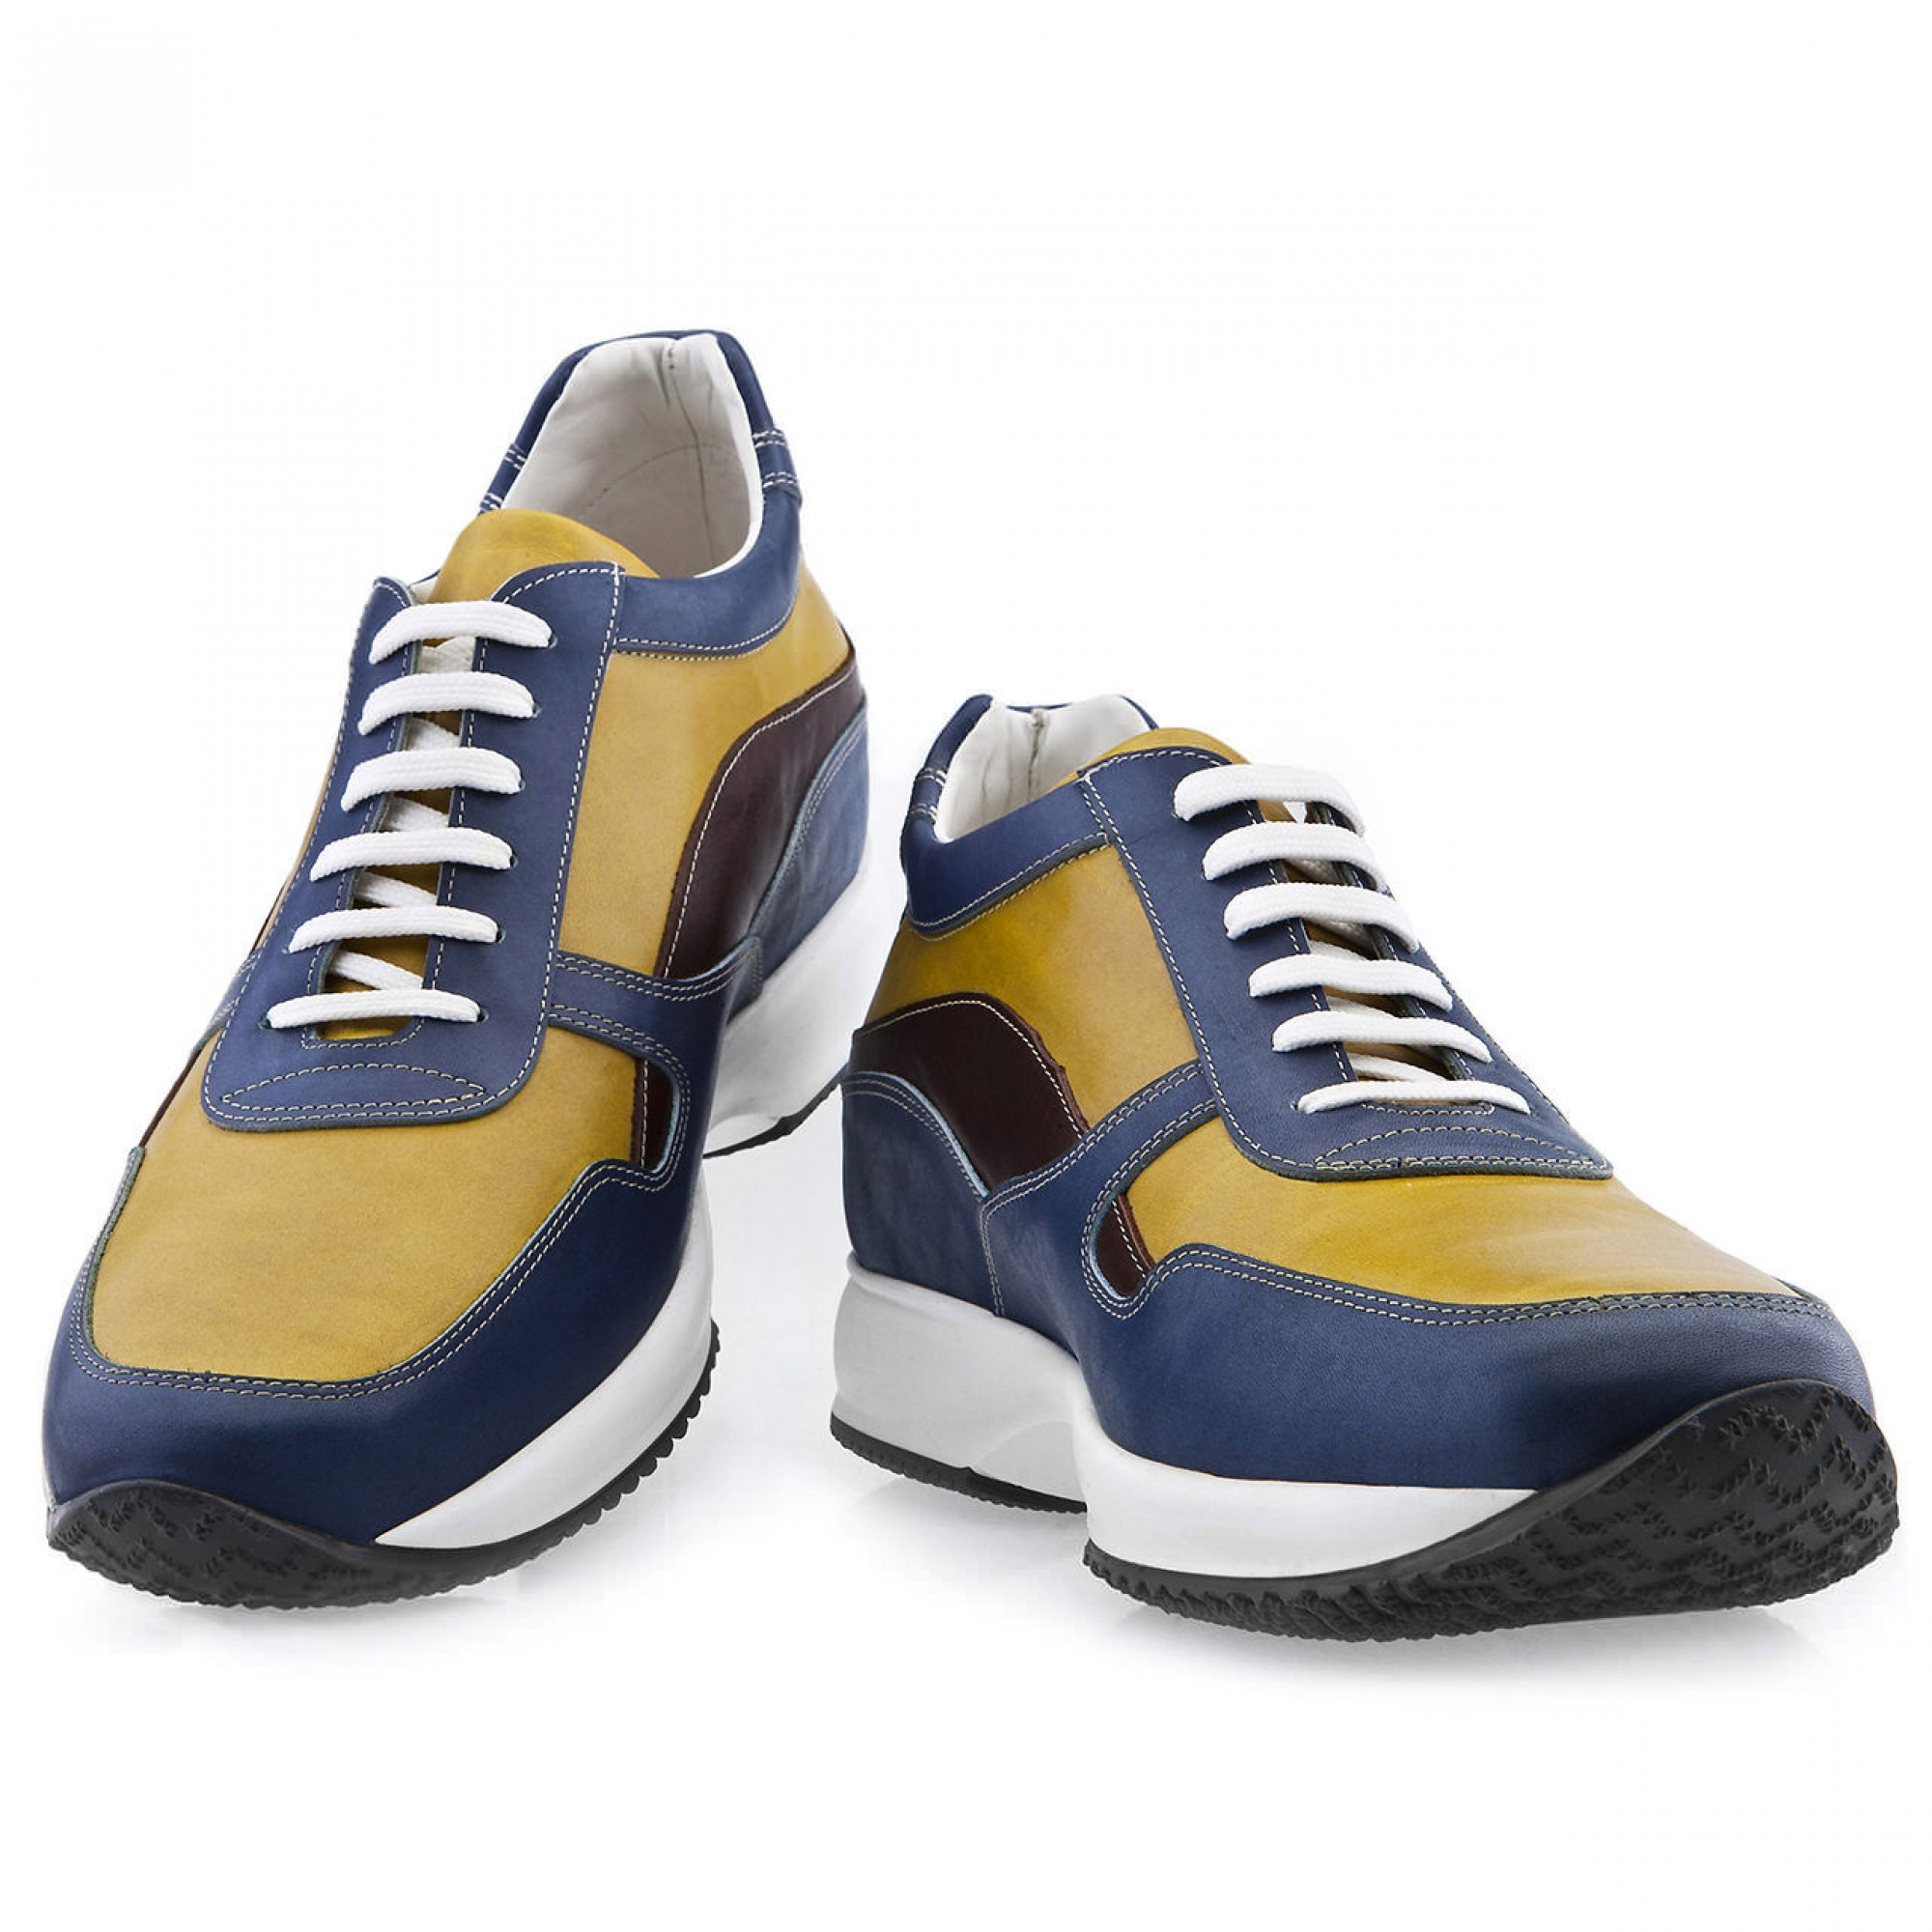 sneakers rialzate donna